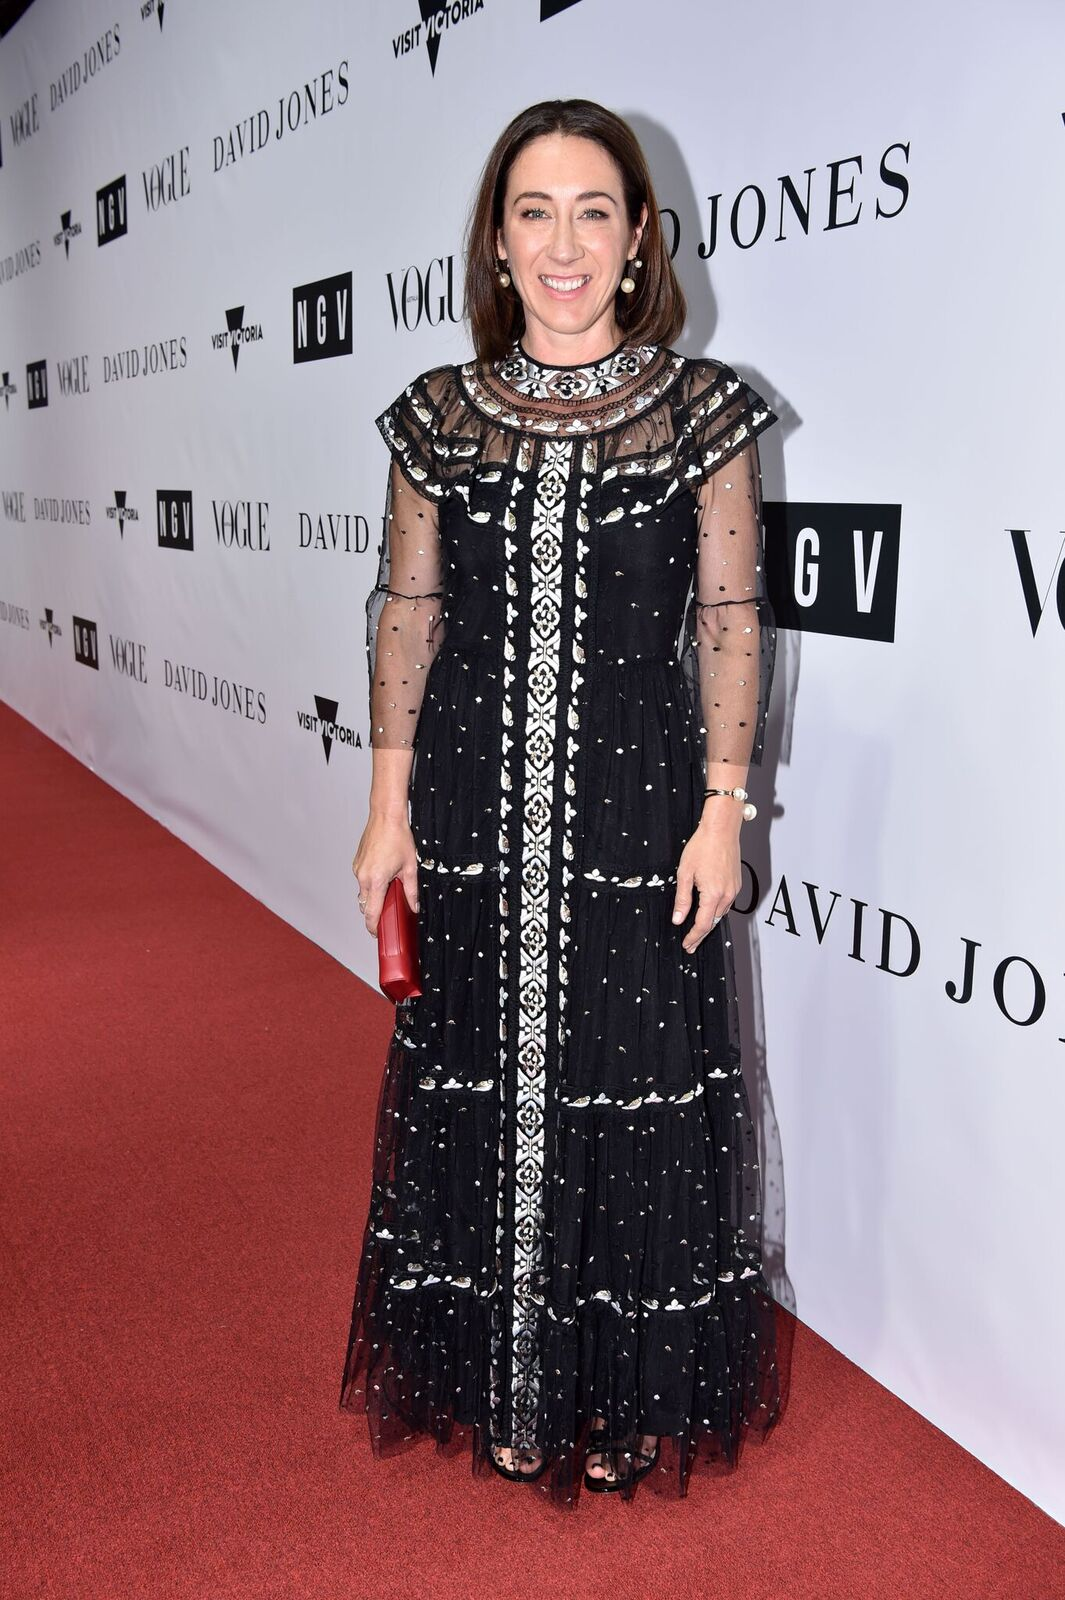 The Inaugural 2017 NGV Gala Red Carpet